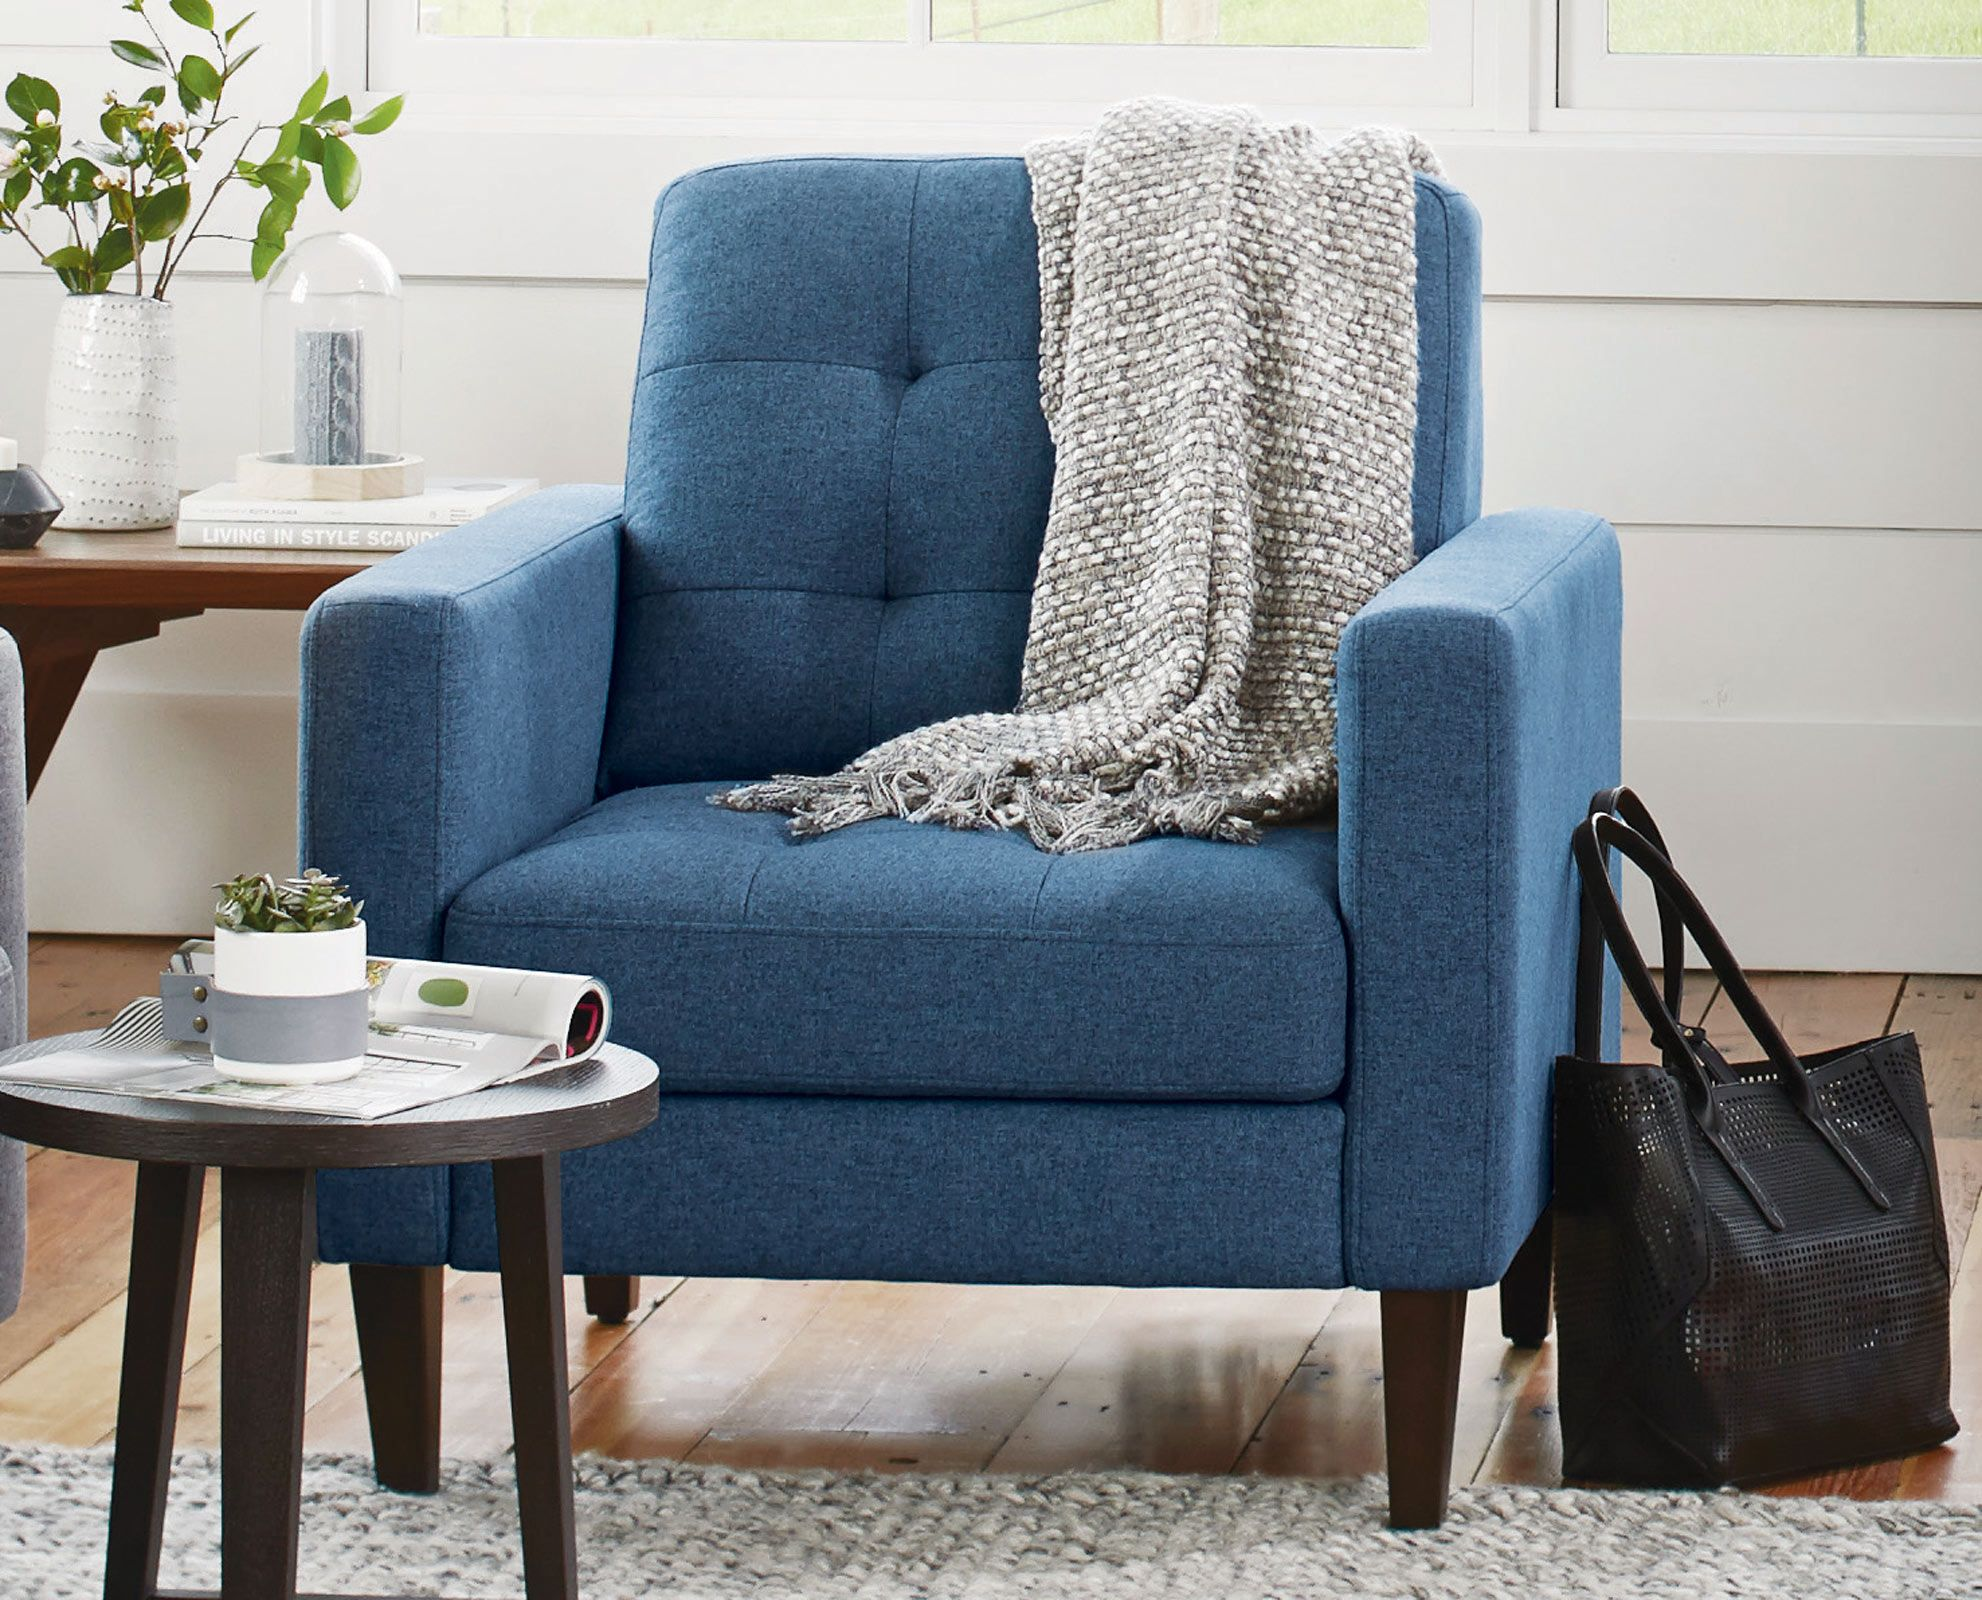 home chair saturday seams chairs to dania june fit arrivals latest